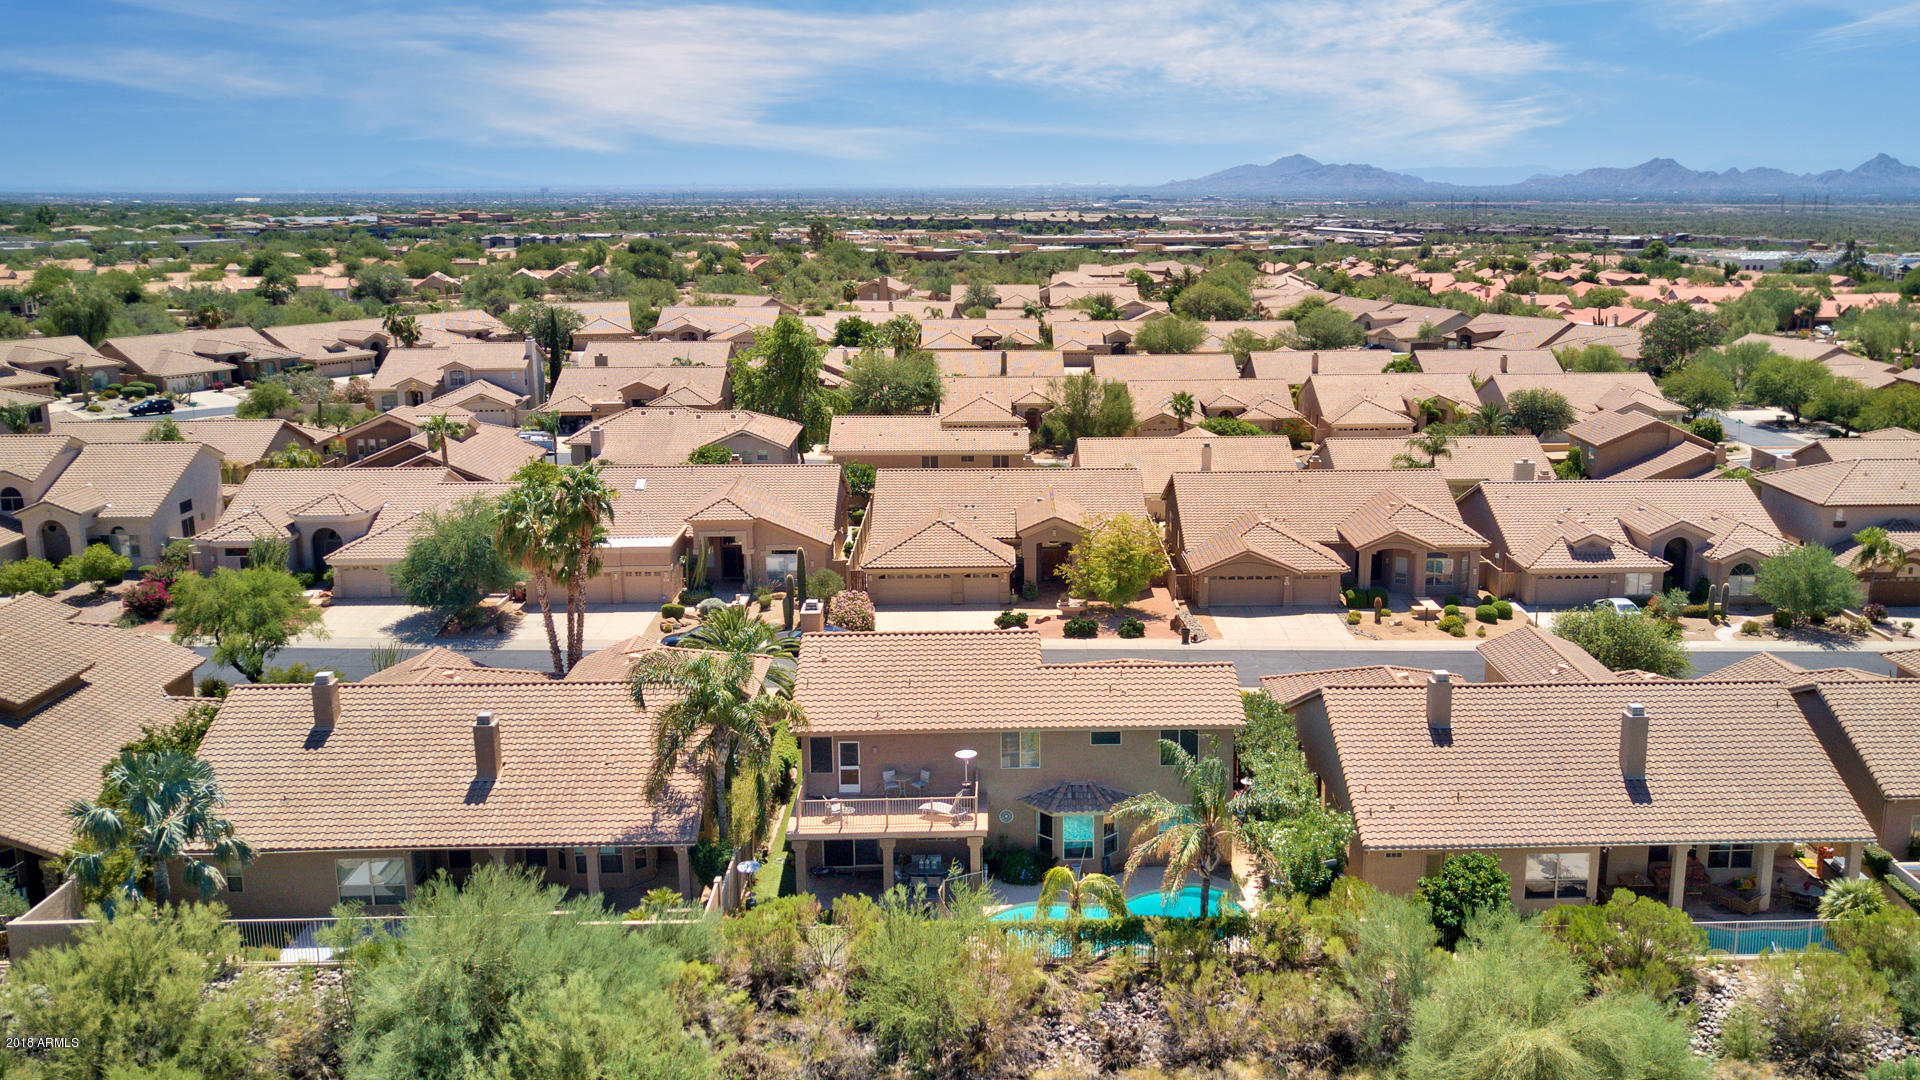 MLS 5817667 7450 E SAND HILLS Road, Scottsdale, AZ 85255 Scottsdale AZ REO Bank Owned Foreclosure